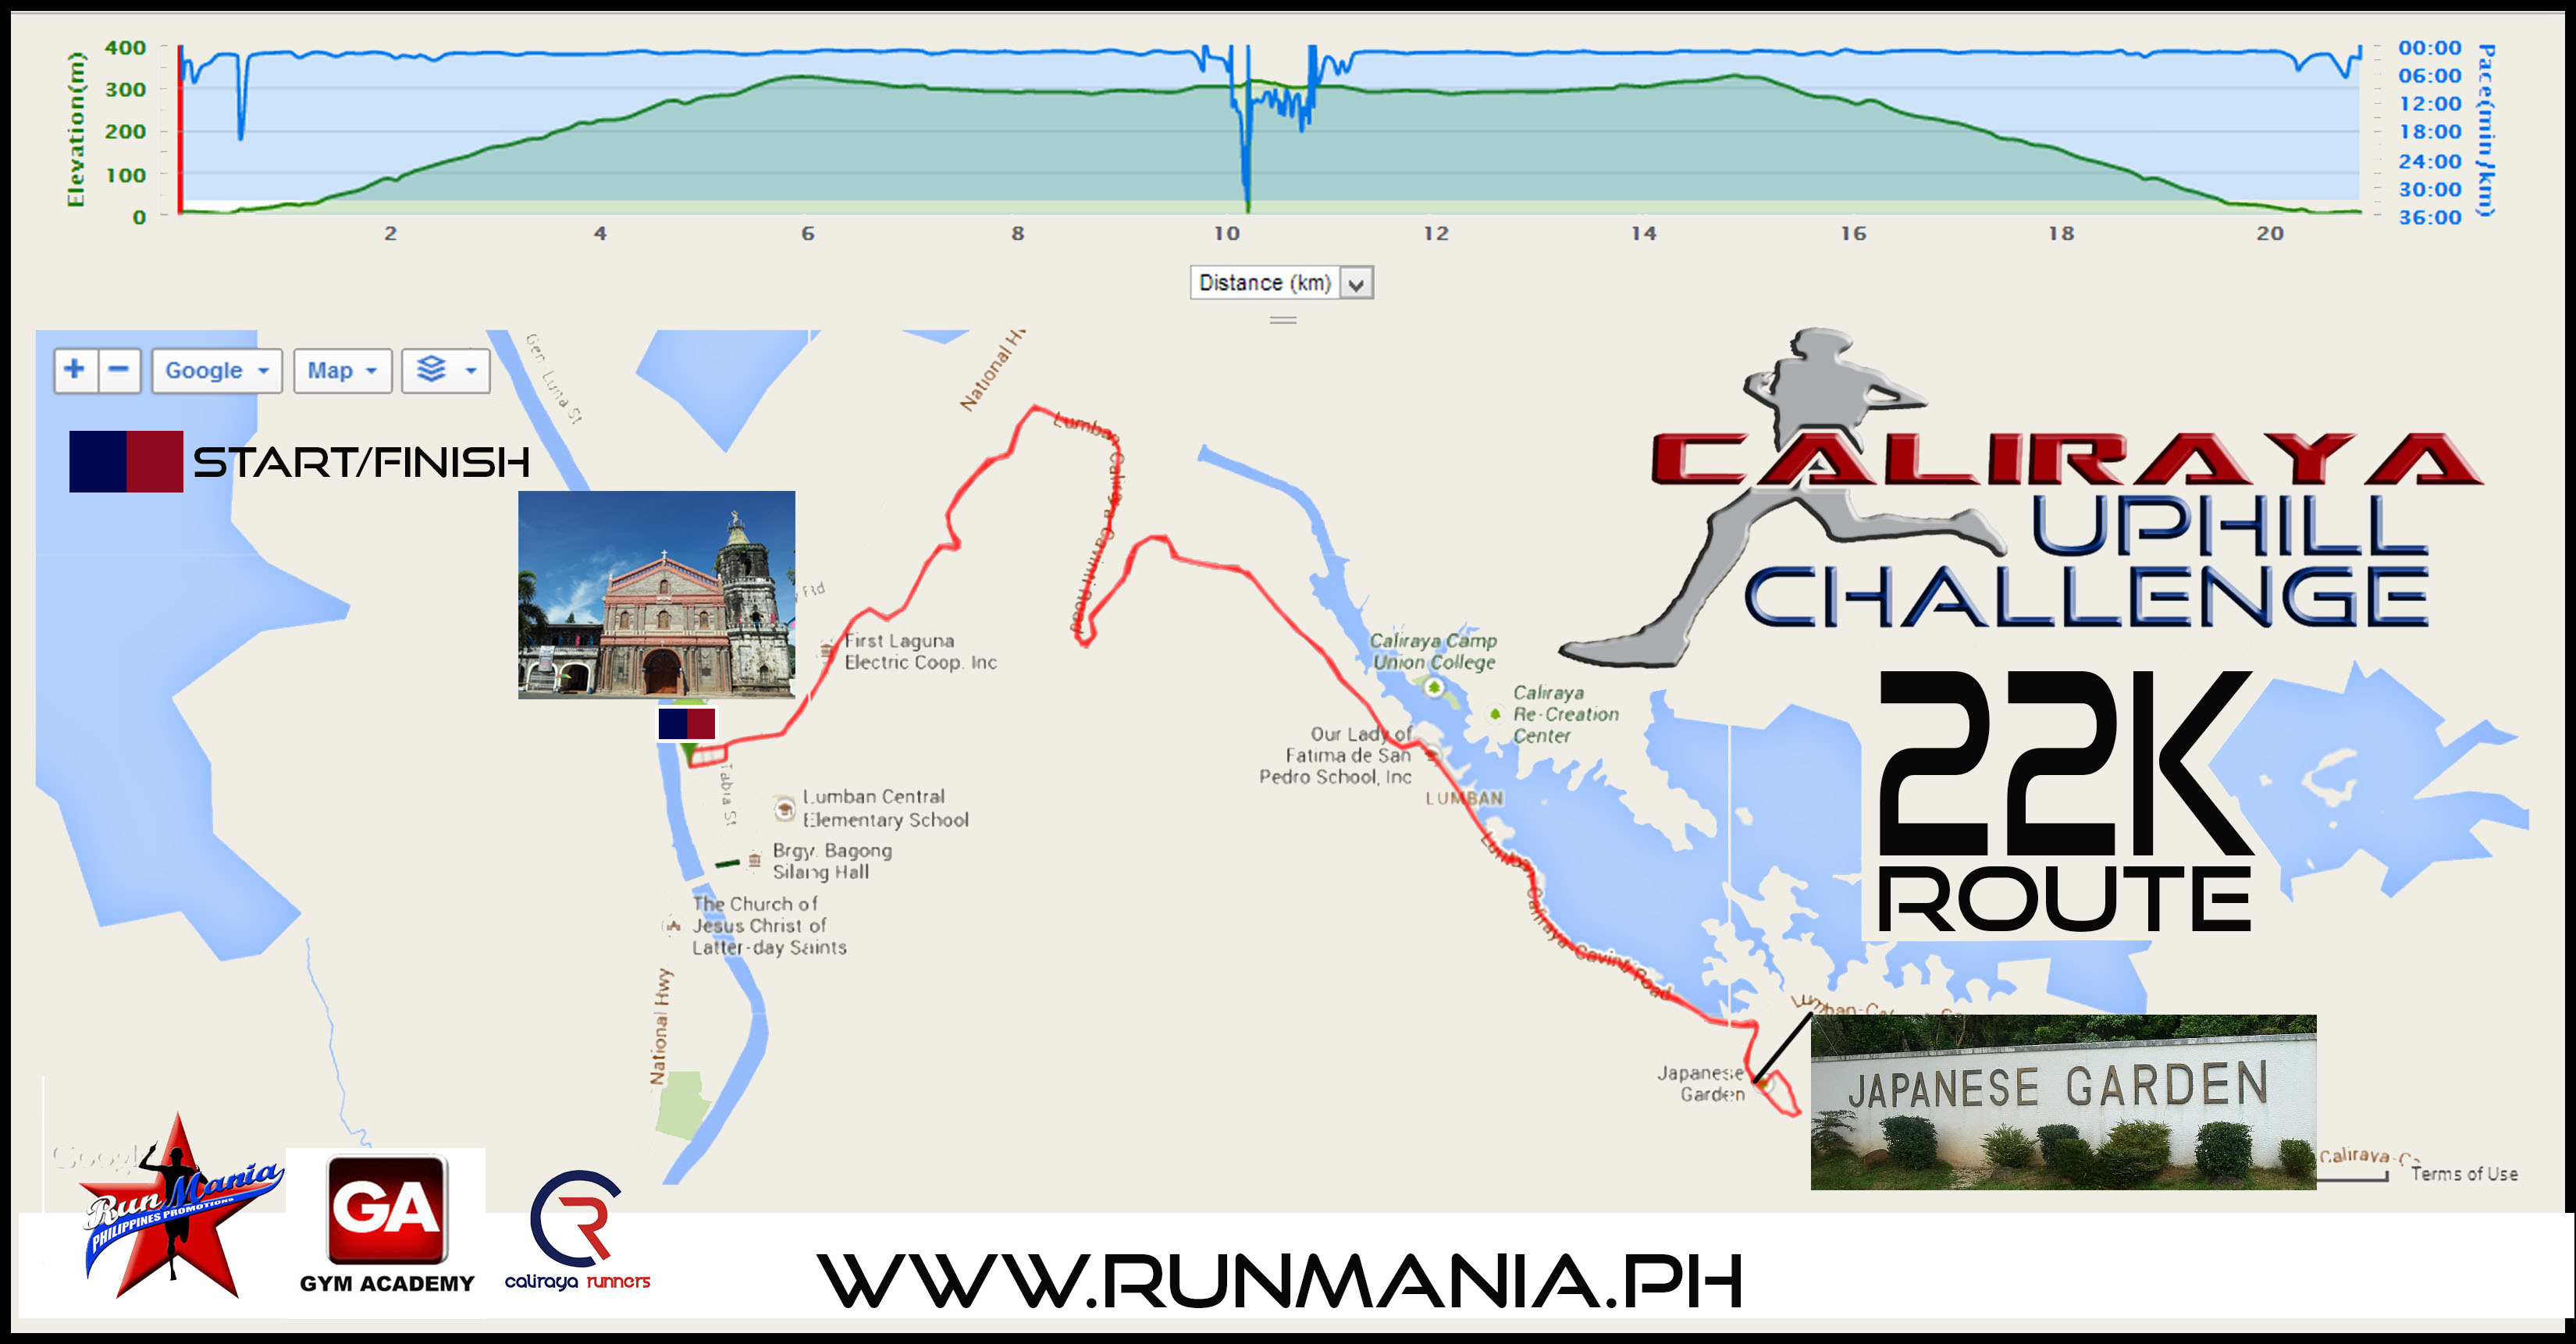 Gym-Academy-(GA)-Caliraya-Uphill-Challenge-route-map